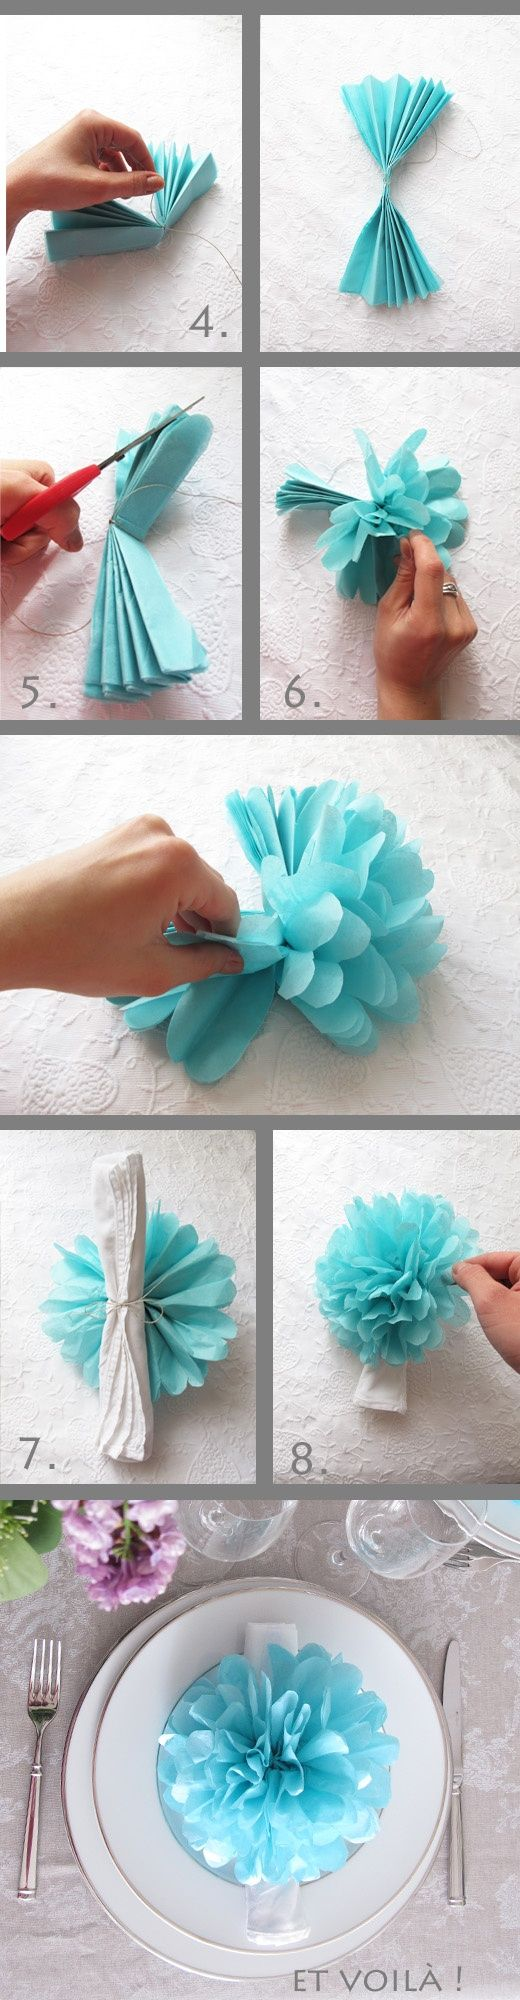 wedding tutorial With peach, coral, or mint!-seriously adorable! Not so much for wedding, but bridal lunch or rehearsal dinner.